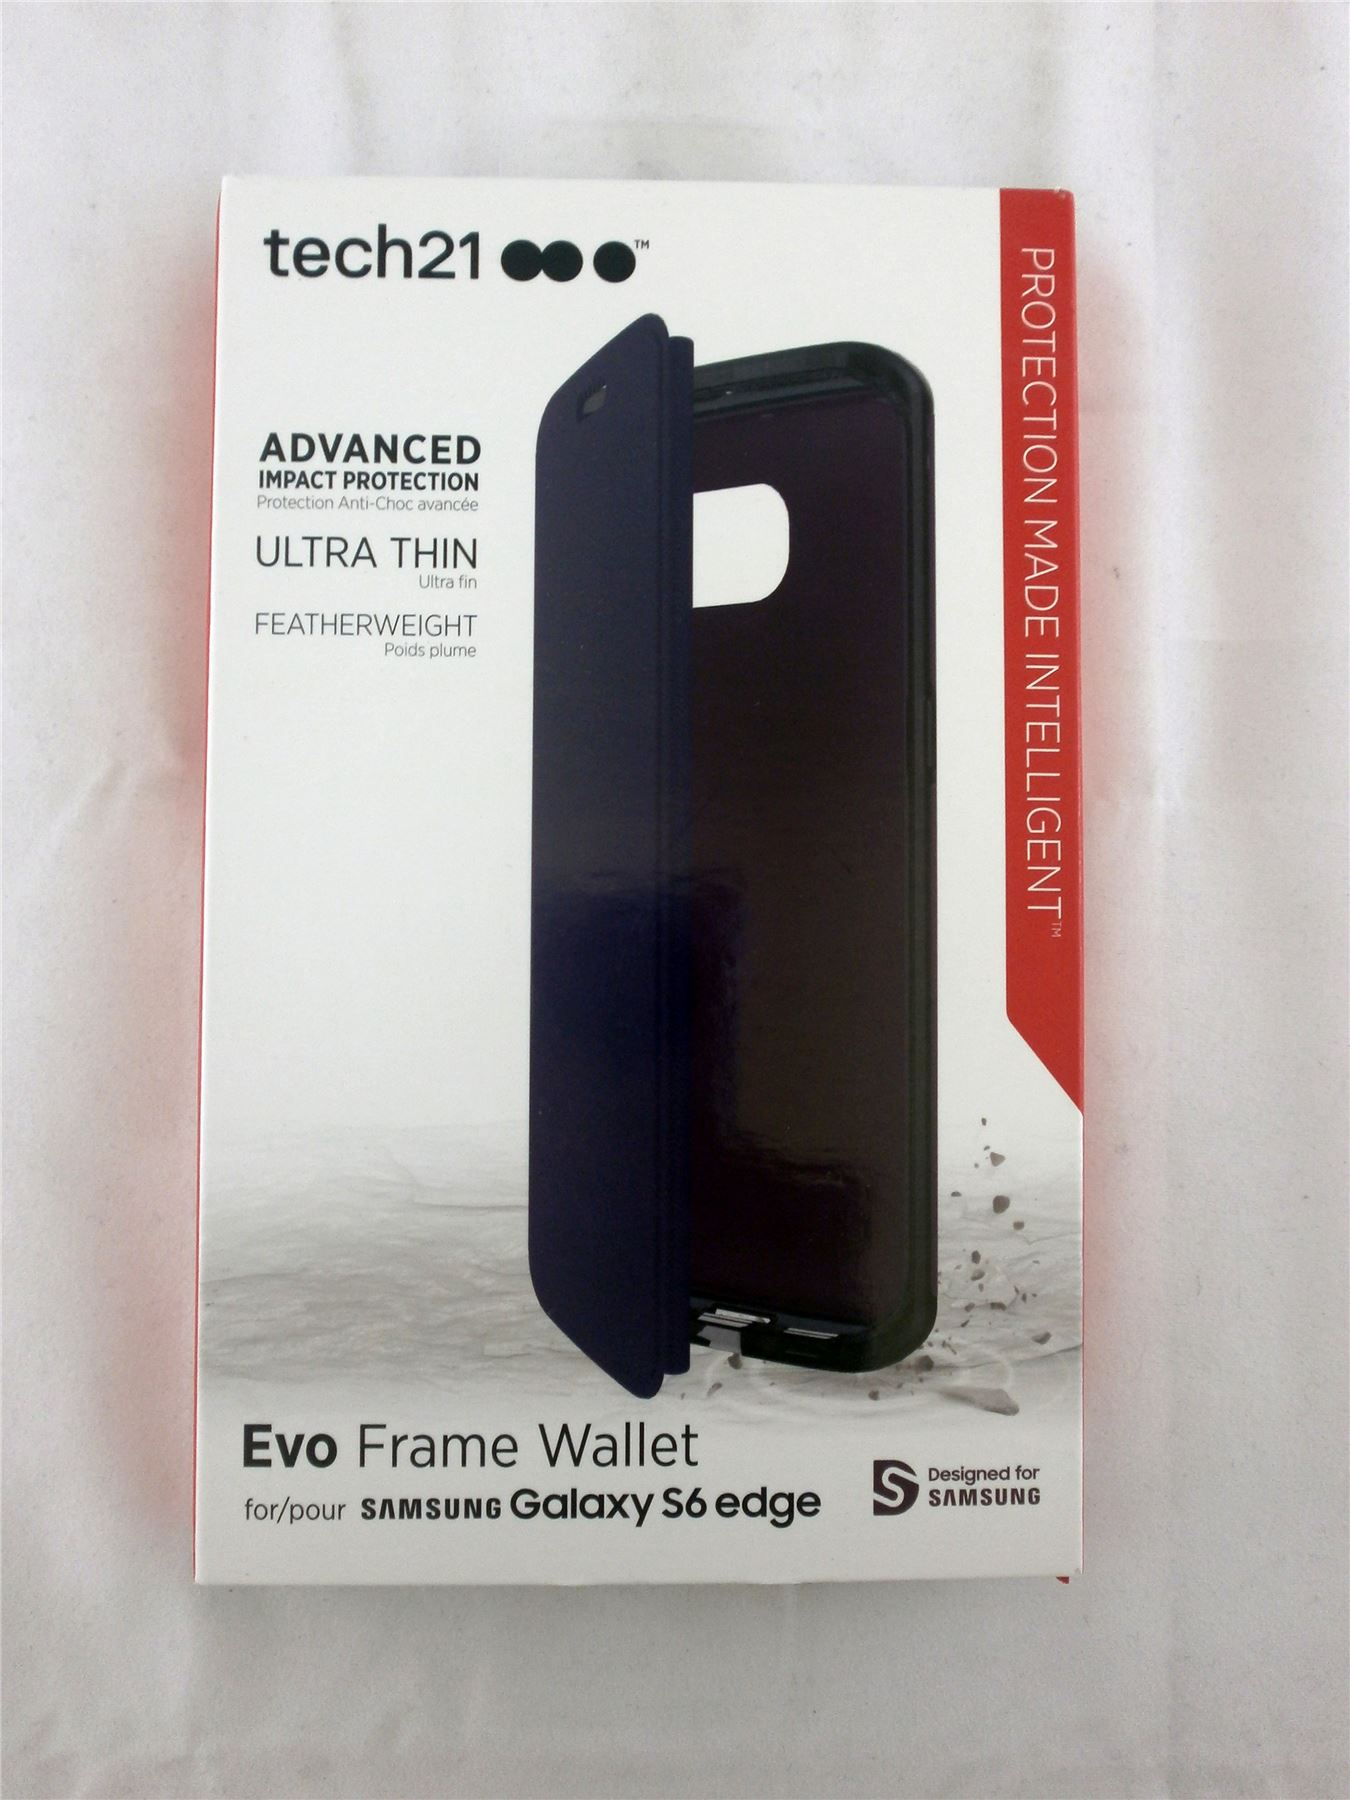 promo code eda98 d33a0 Details about Tech21 Evo Frame Wallet Case Cover for Samsung Galaxy S6 Edge  Purple T21-4459